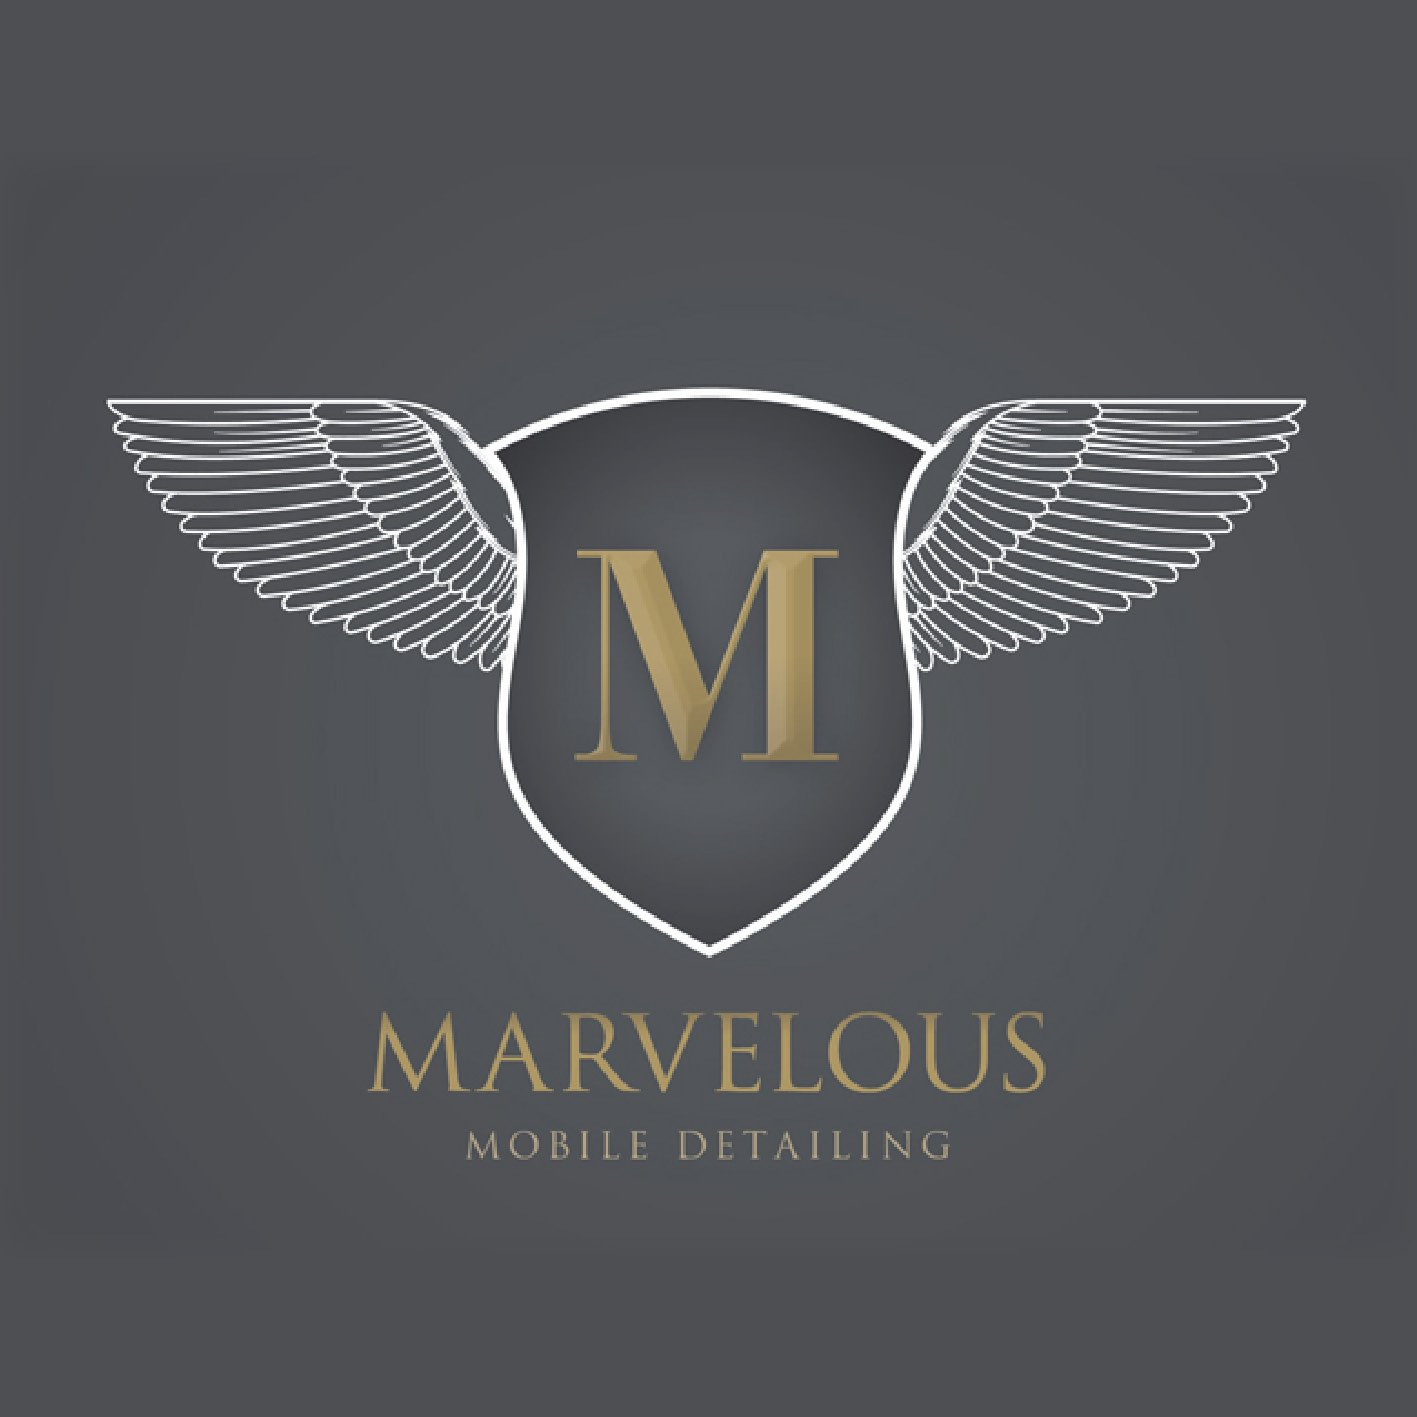 Marvelous Mobile Auto Car Detailing Logo Design